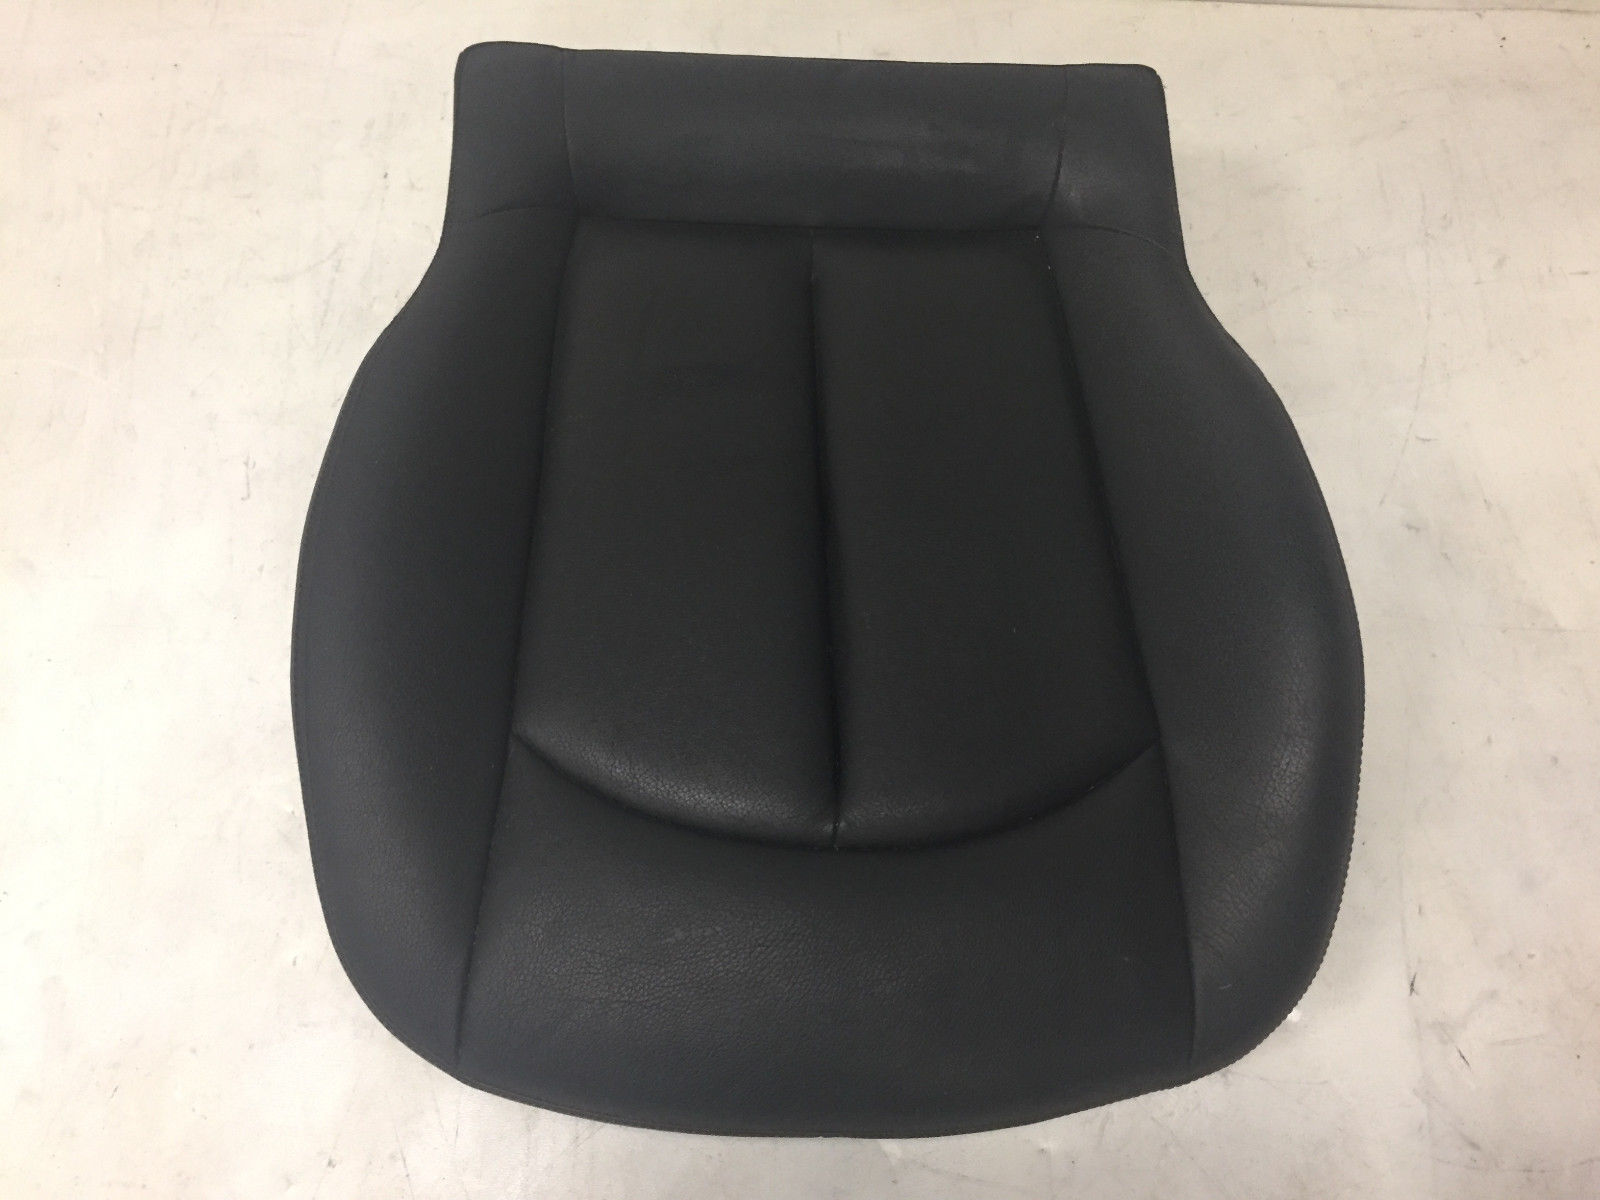 2006 Mercedes CLK320 Front Left Driver Lower Said Black Leather Seat